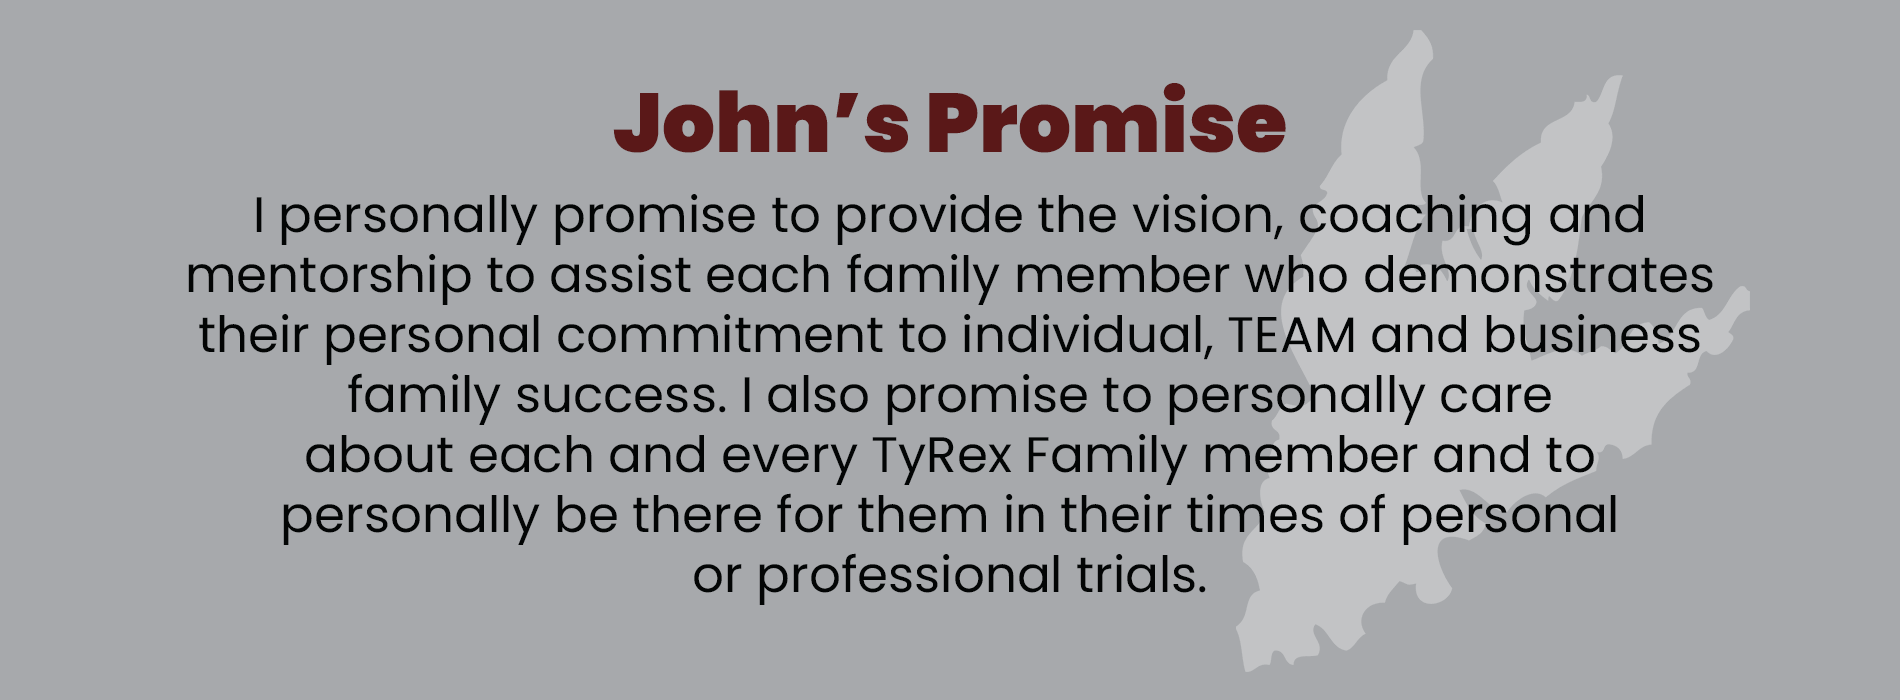 John Bosch, Jr. Promise to TyRex Family